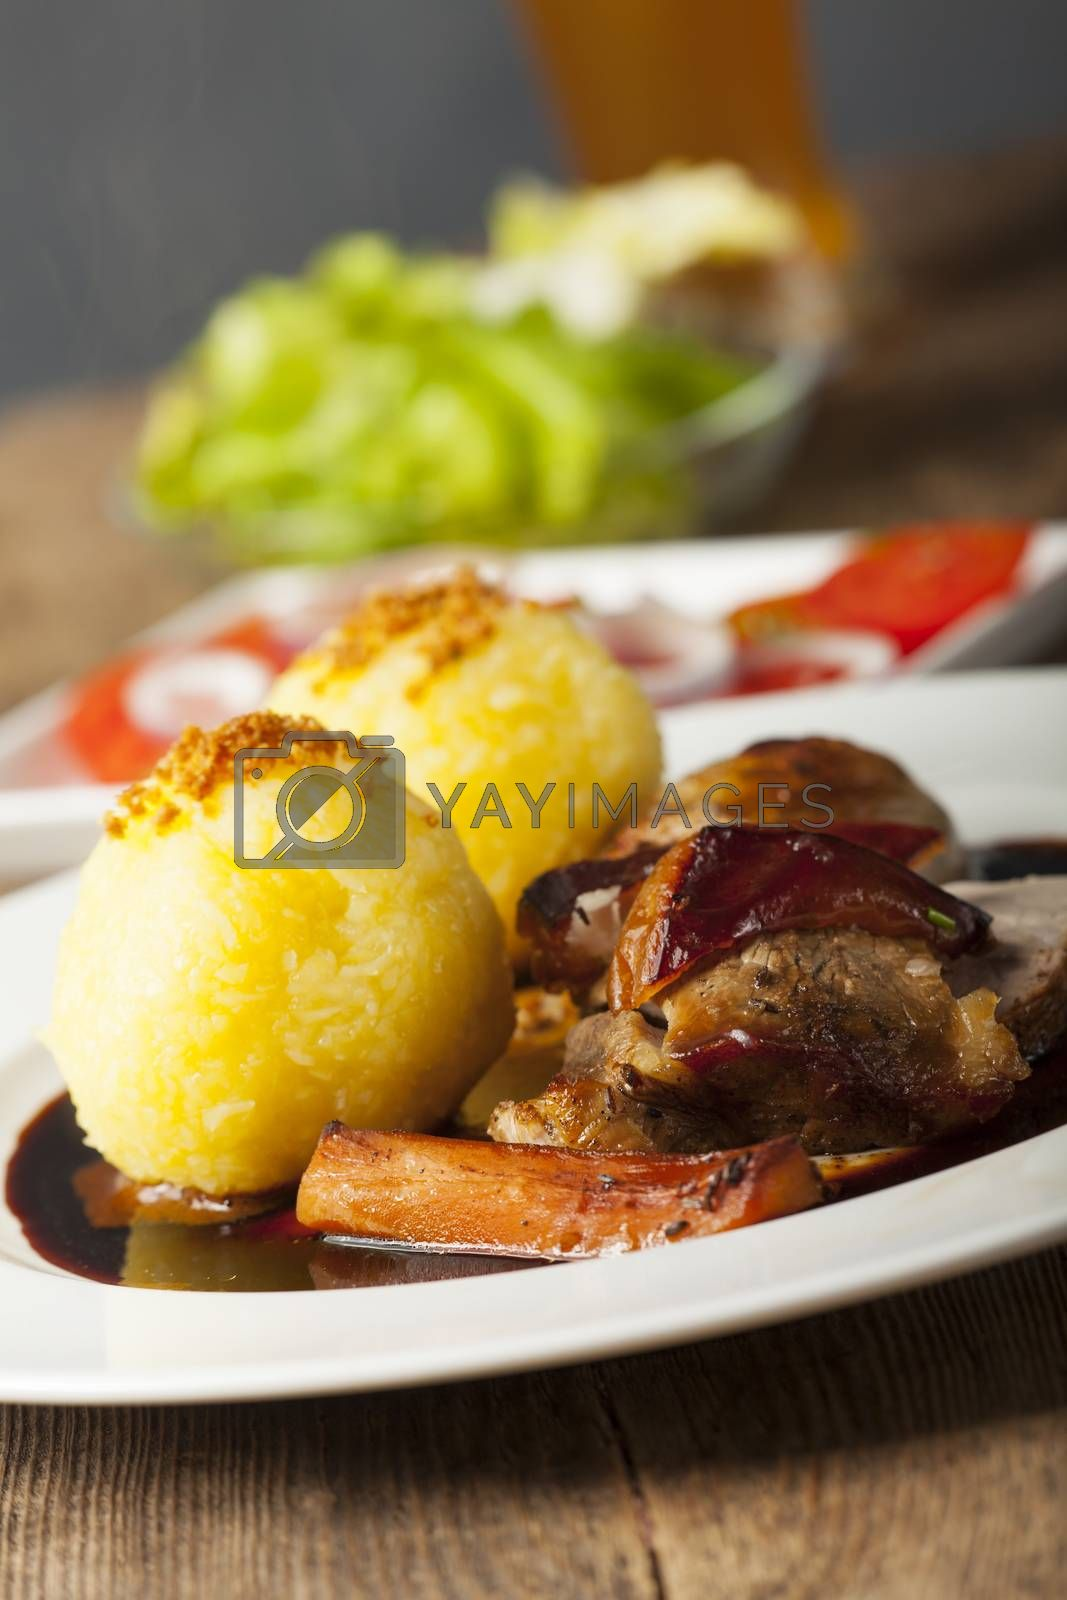 Royalty free image of roasted pork dish with dumplings  by bernjuer